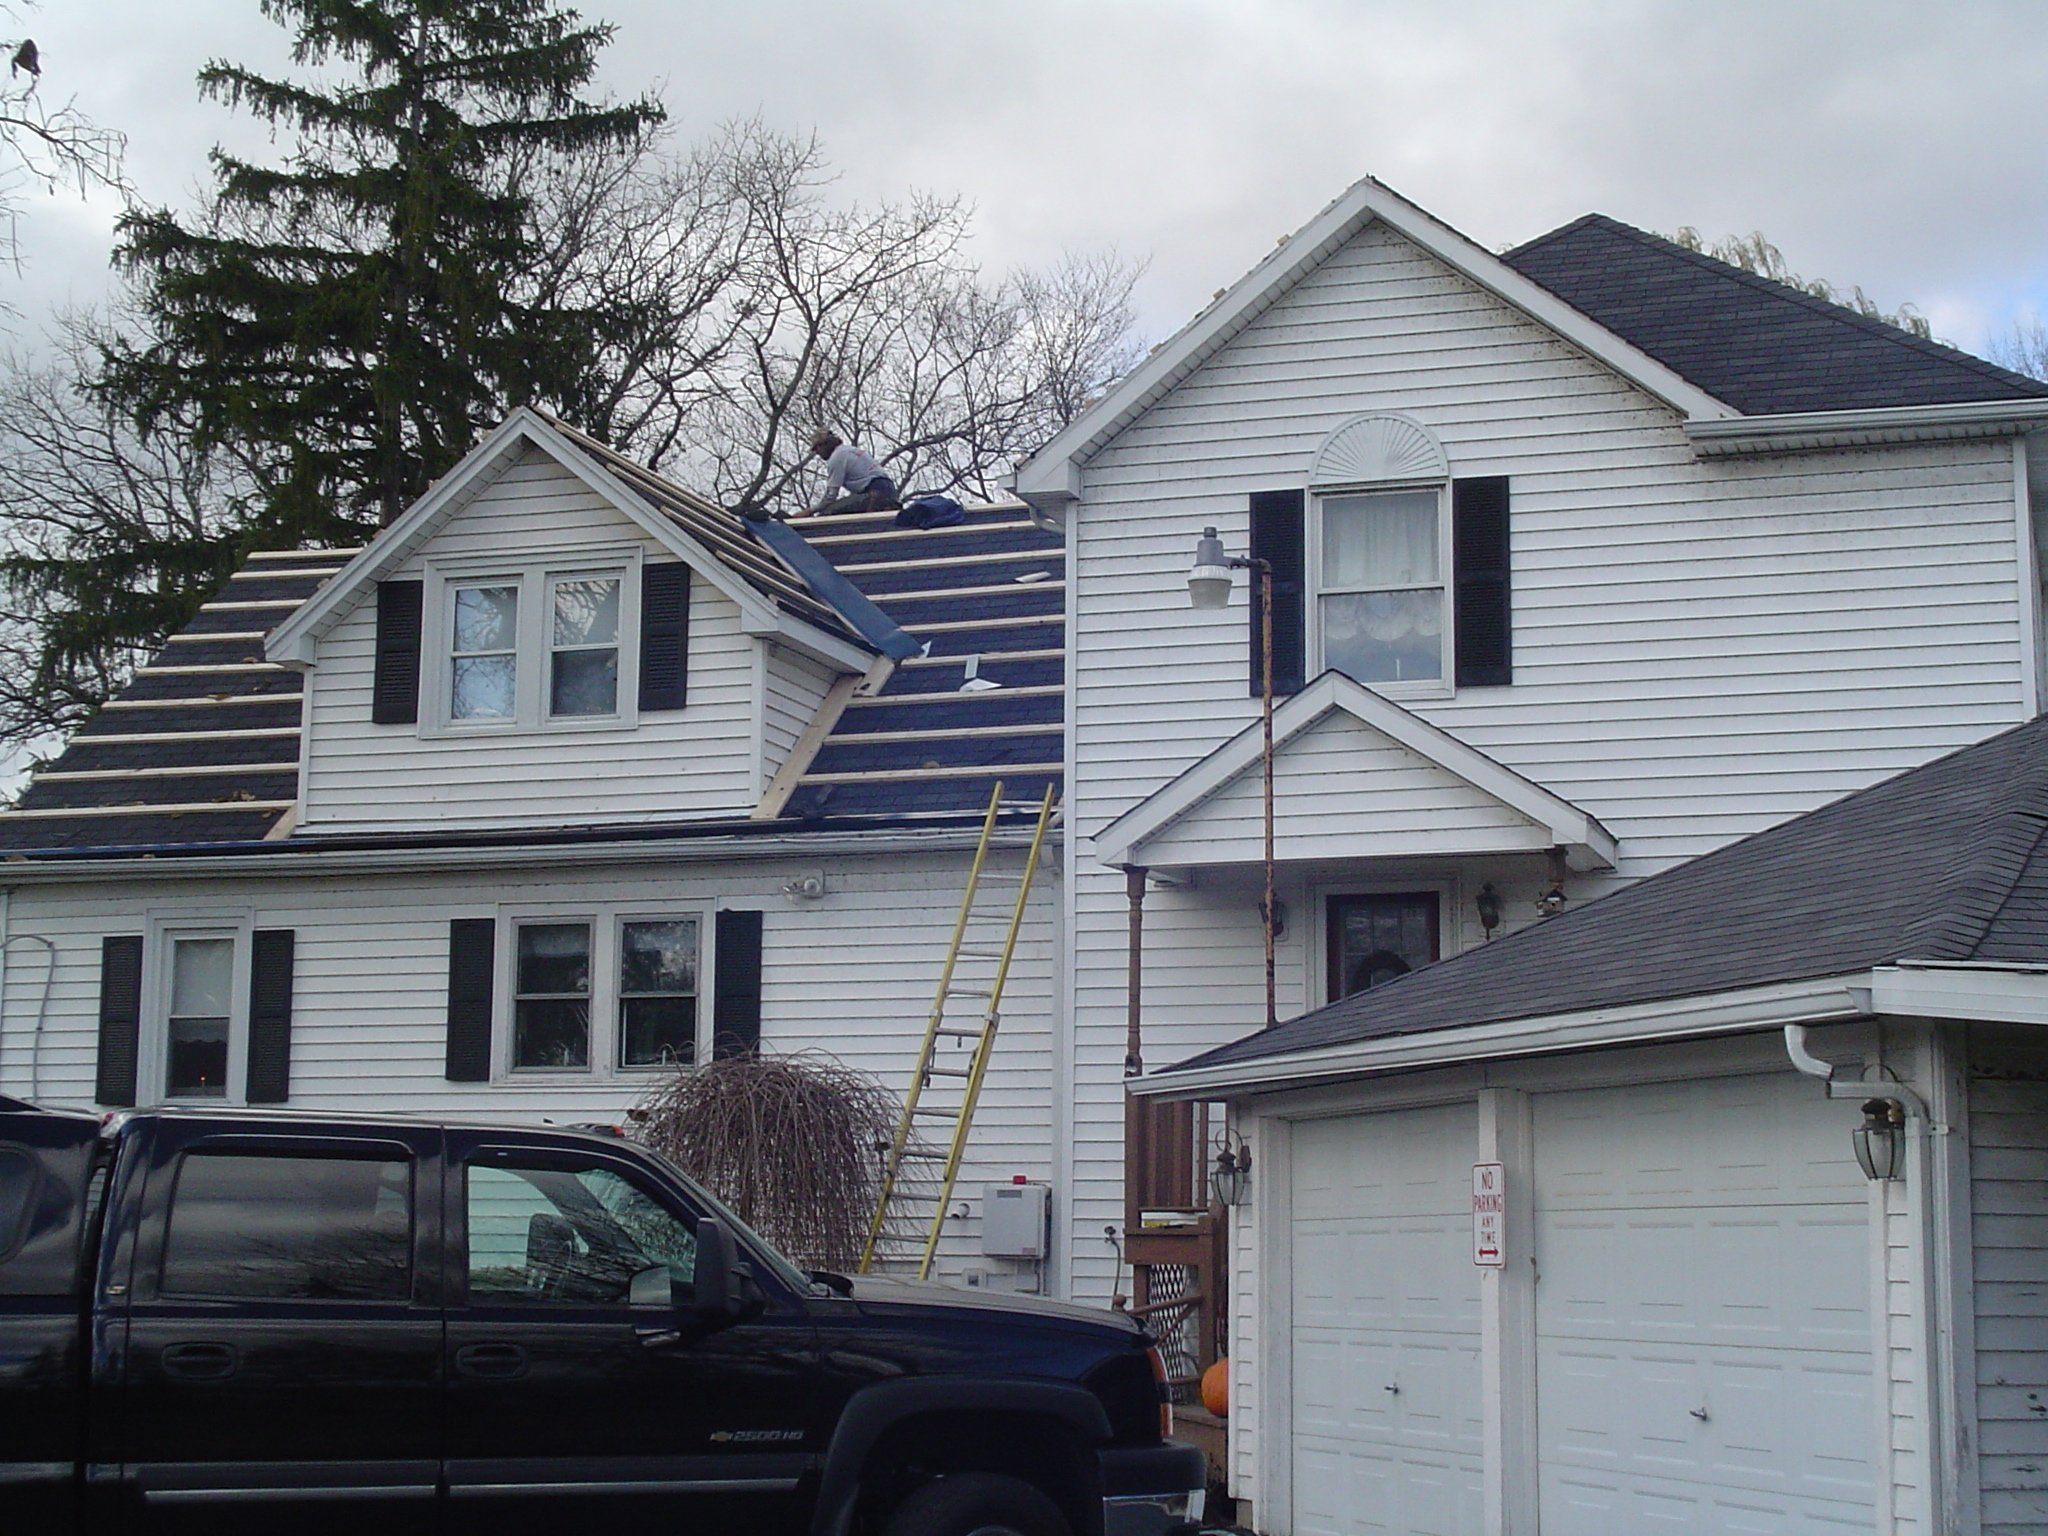 Lockport NY Home Roofing Service